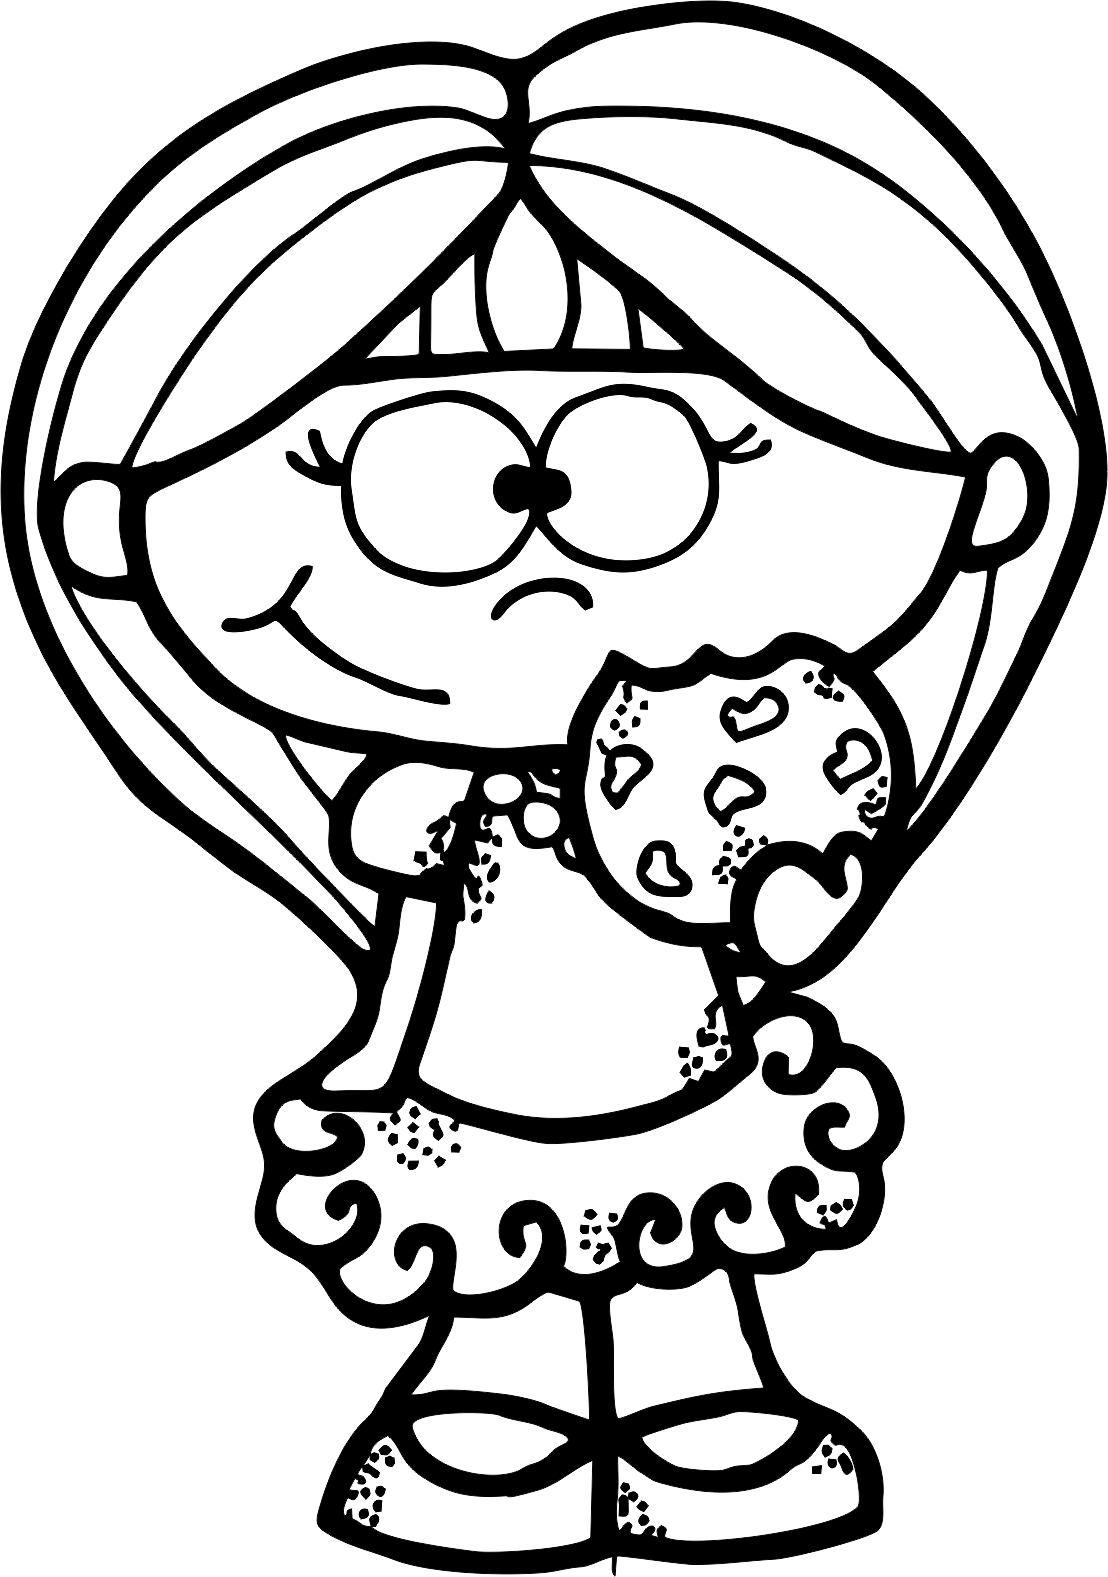 Child reading a book clipart black and white vector transparent library cookie+girl+bw.png (1108×1577) | okulöncesi | Pinterest | Clip art ... vector transparent library